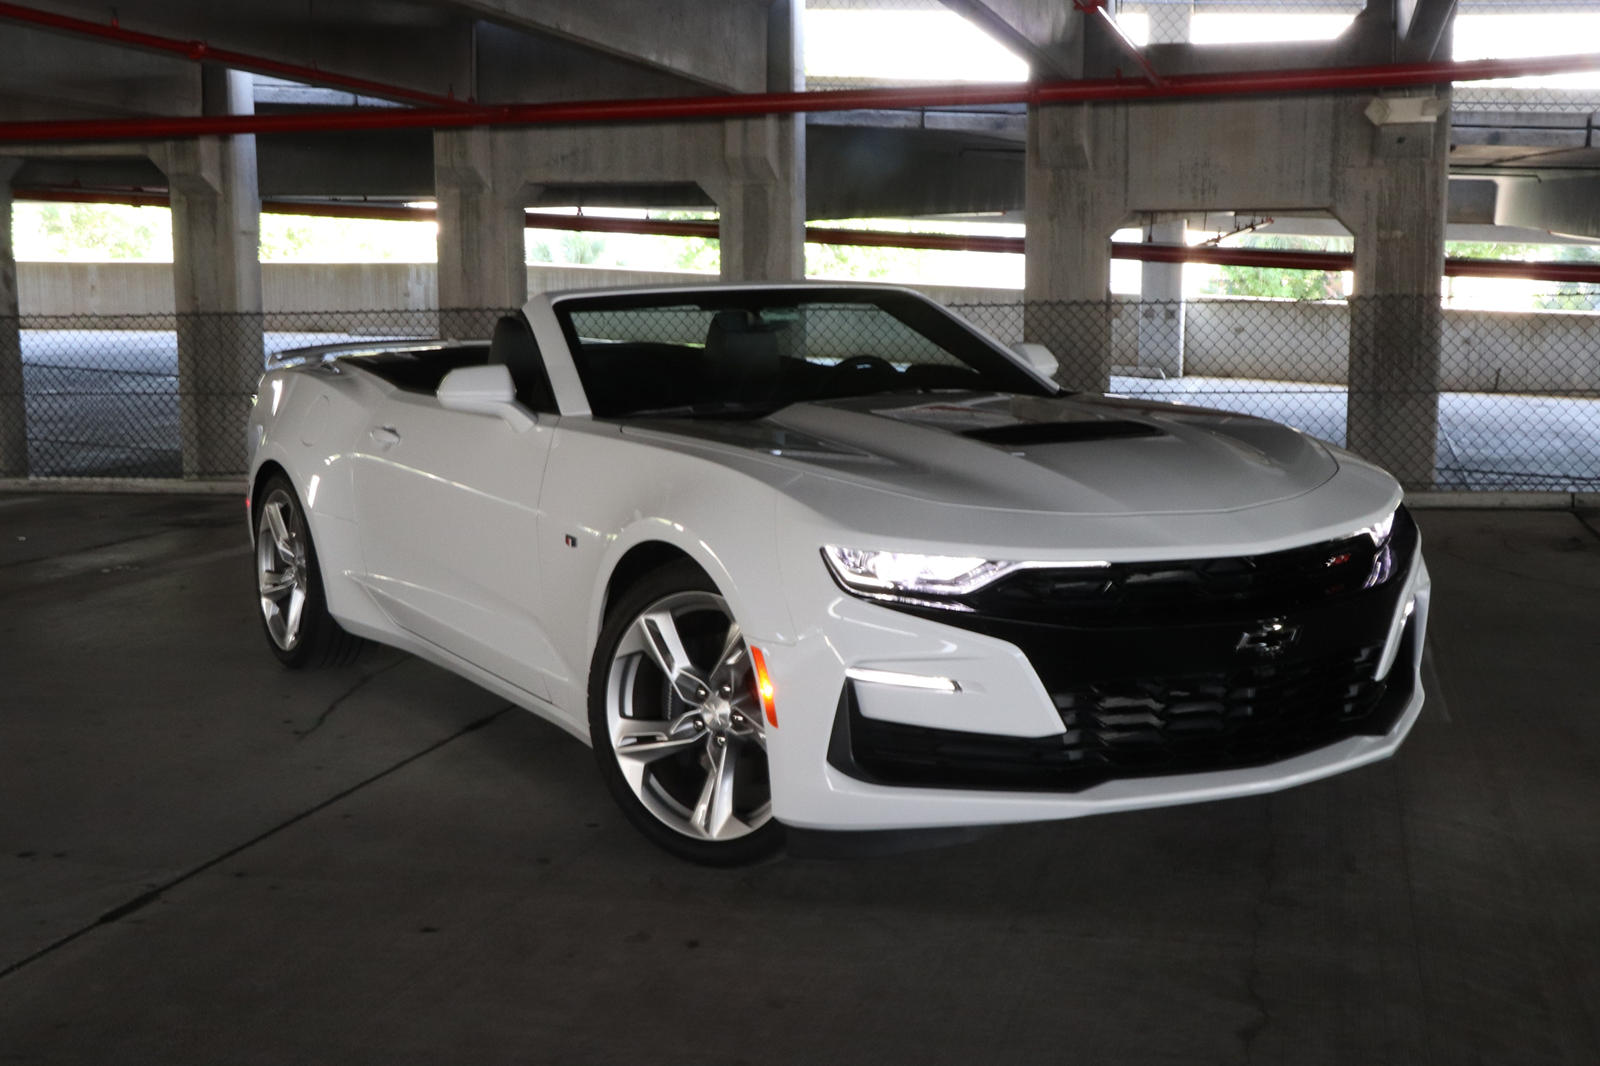 2019 Chevrolet Camaro Convertible Review, Trims, Specs and ...